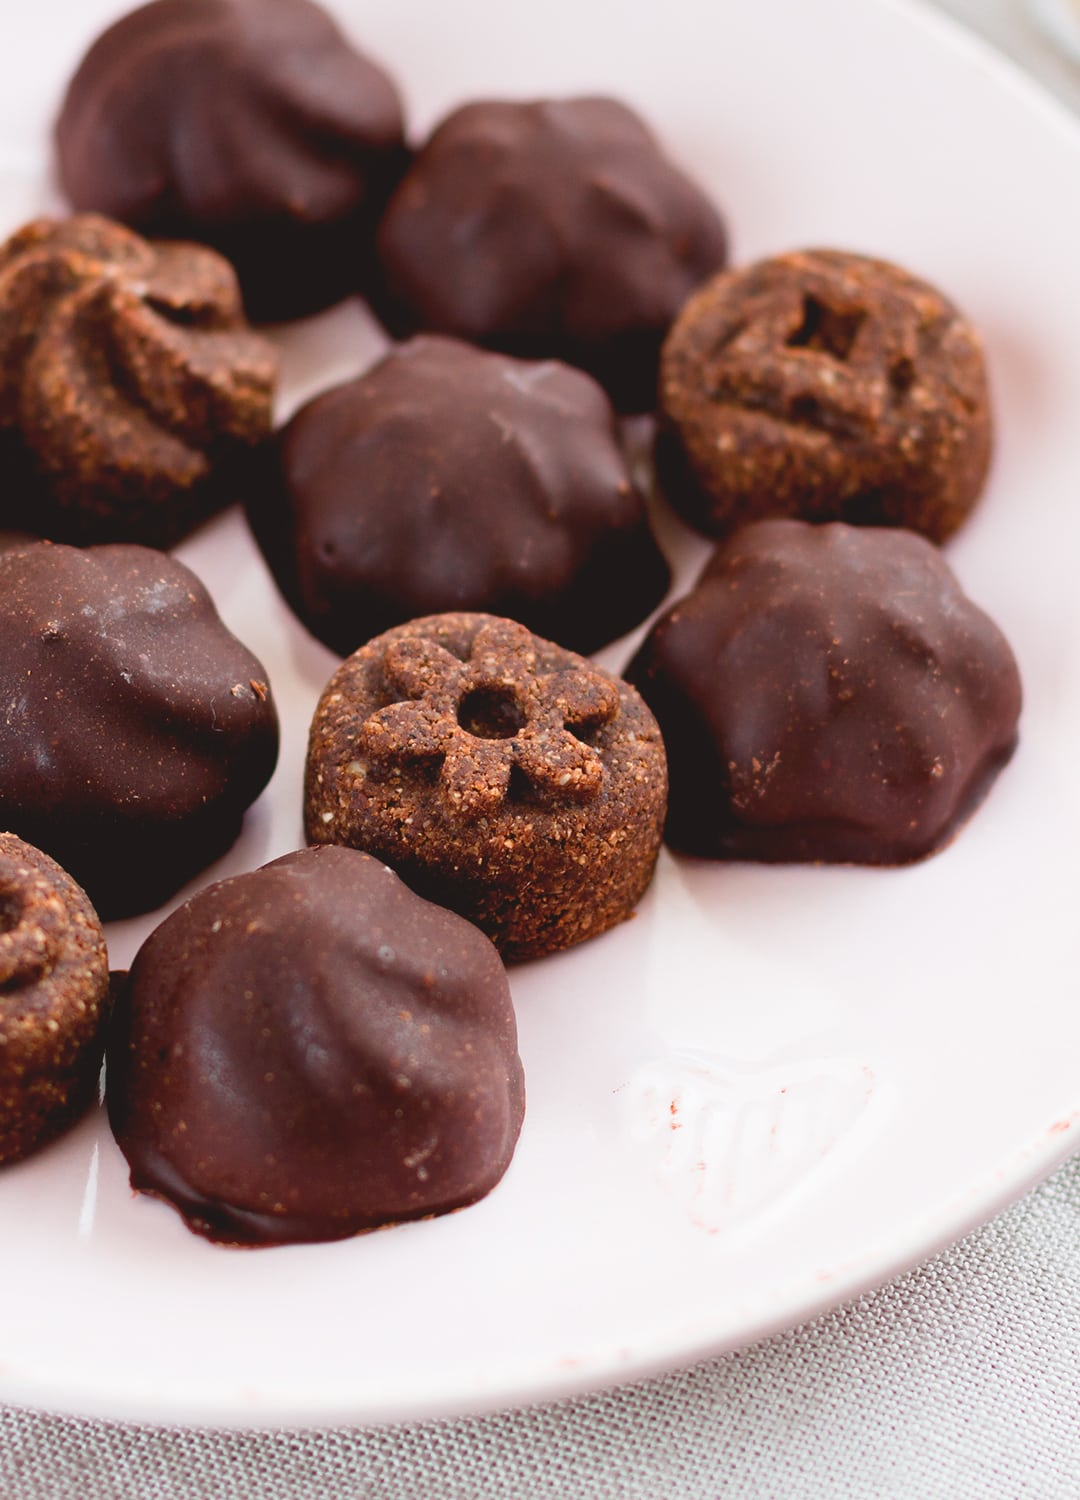 Raw Chocolate Covered Cookies - vegan and delicious, these chocolatey cookies are actually healthy! Great for Valentine's Day or any other day of the week when you're craving something sweet! Store them in the fridge or in the freezer. | thehealthfulideas.com